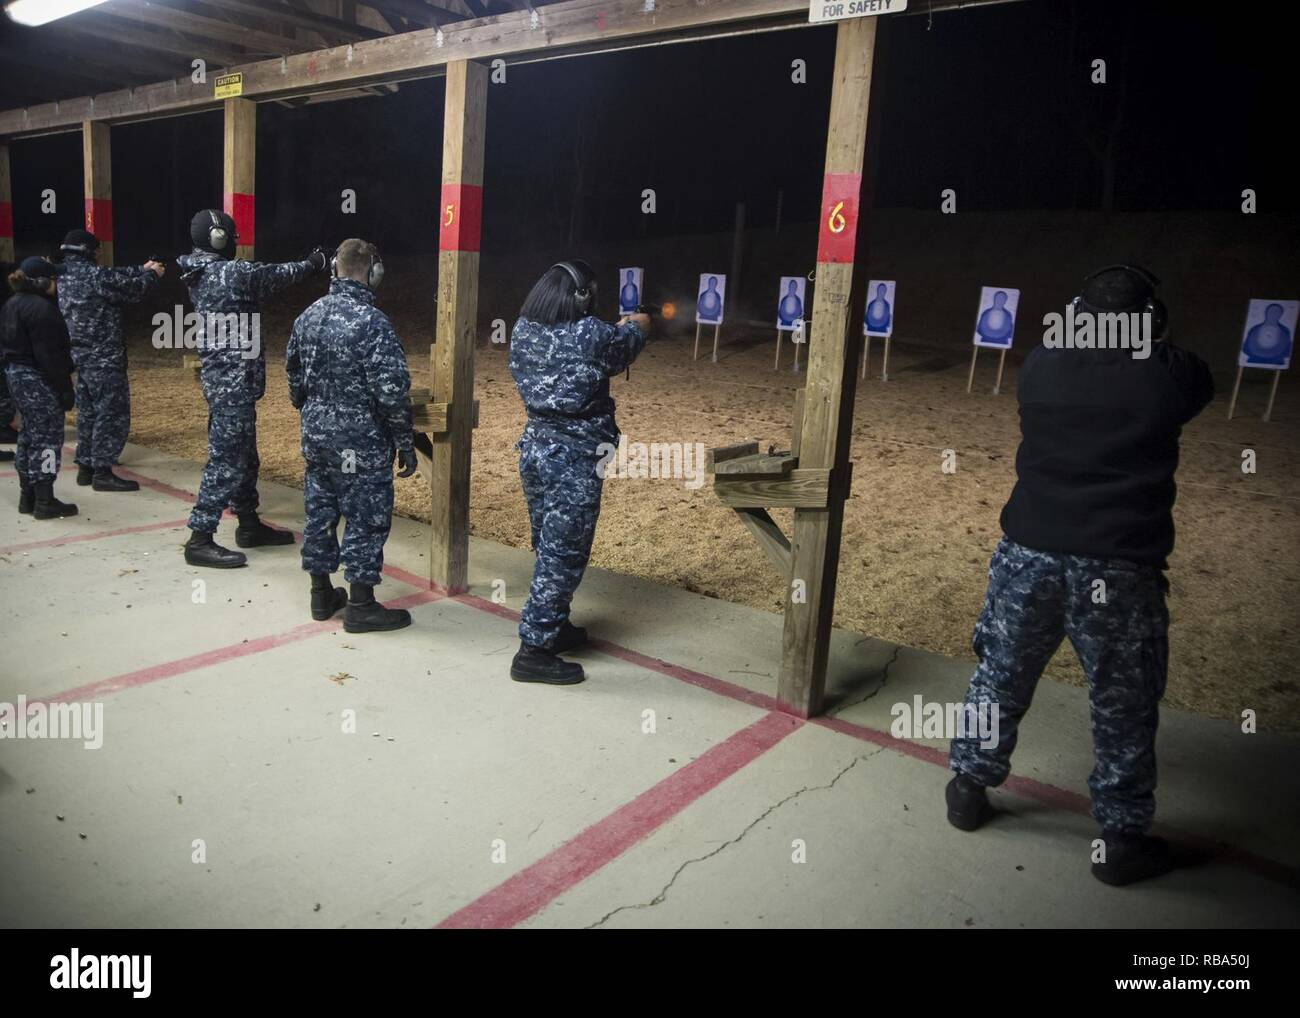 01d24b31a32 Navy Handgun Qualification Course Stock Photos   Navy Handgun ...